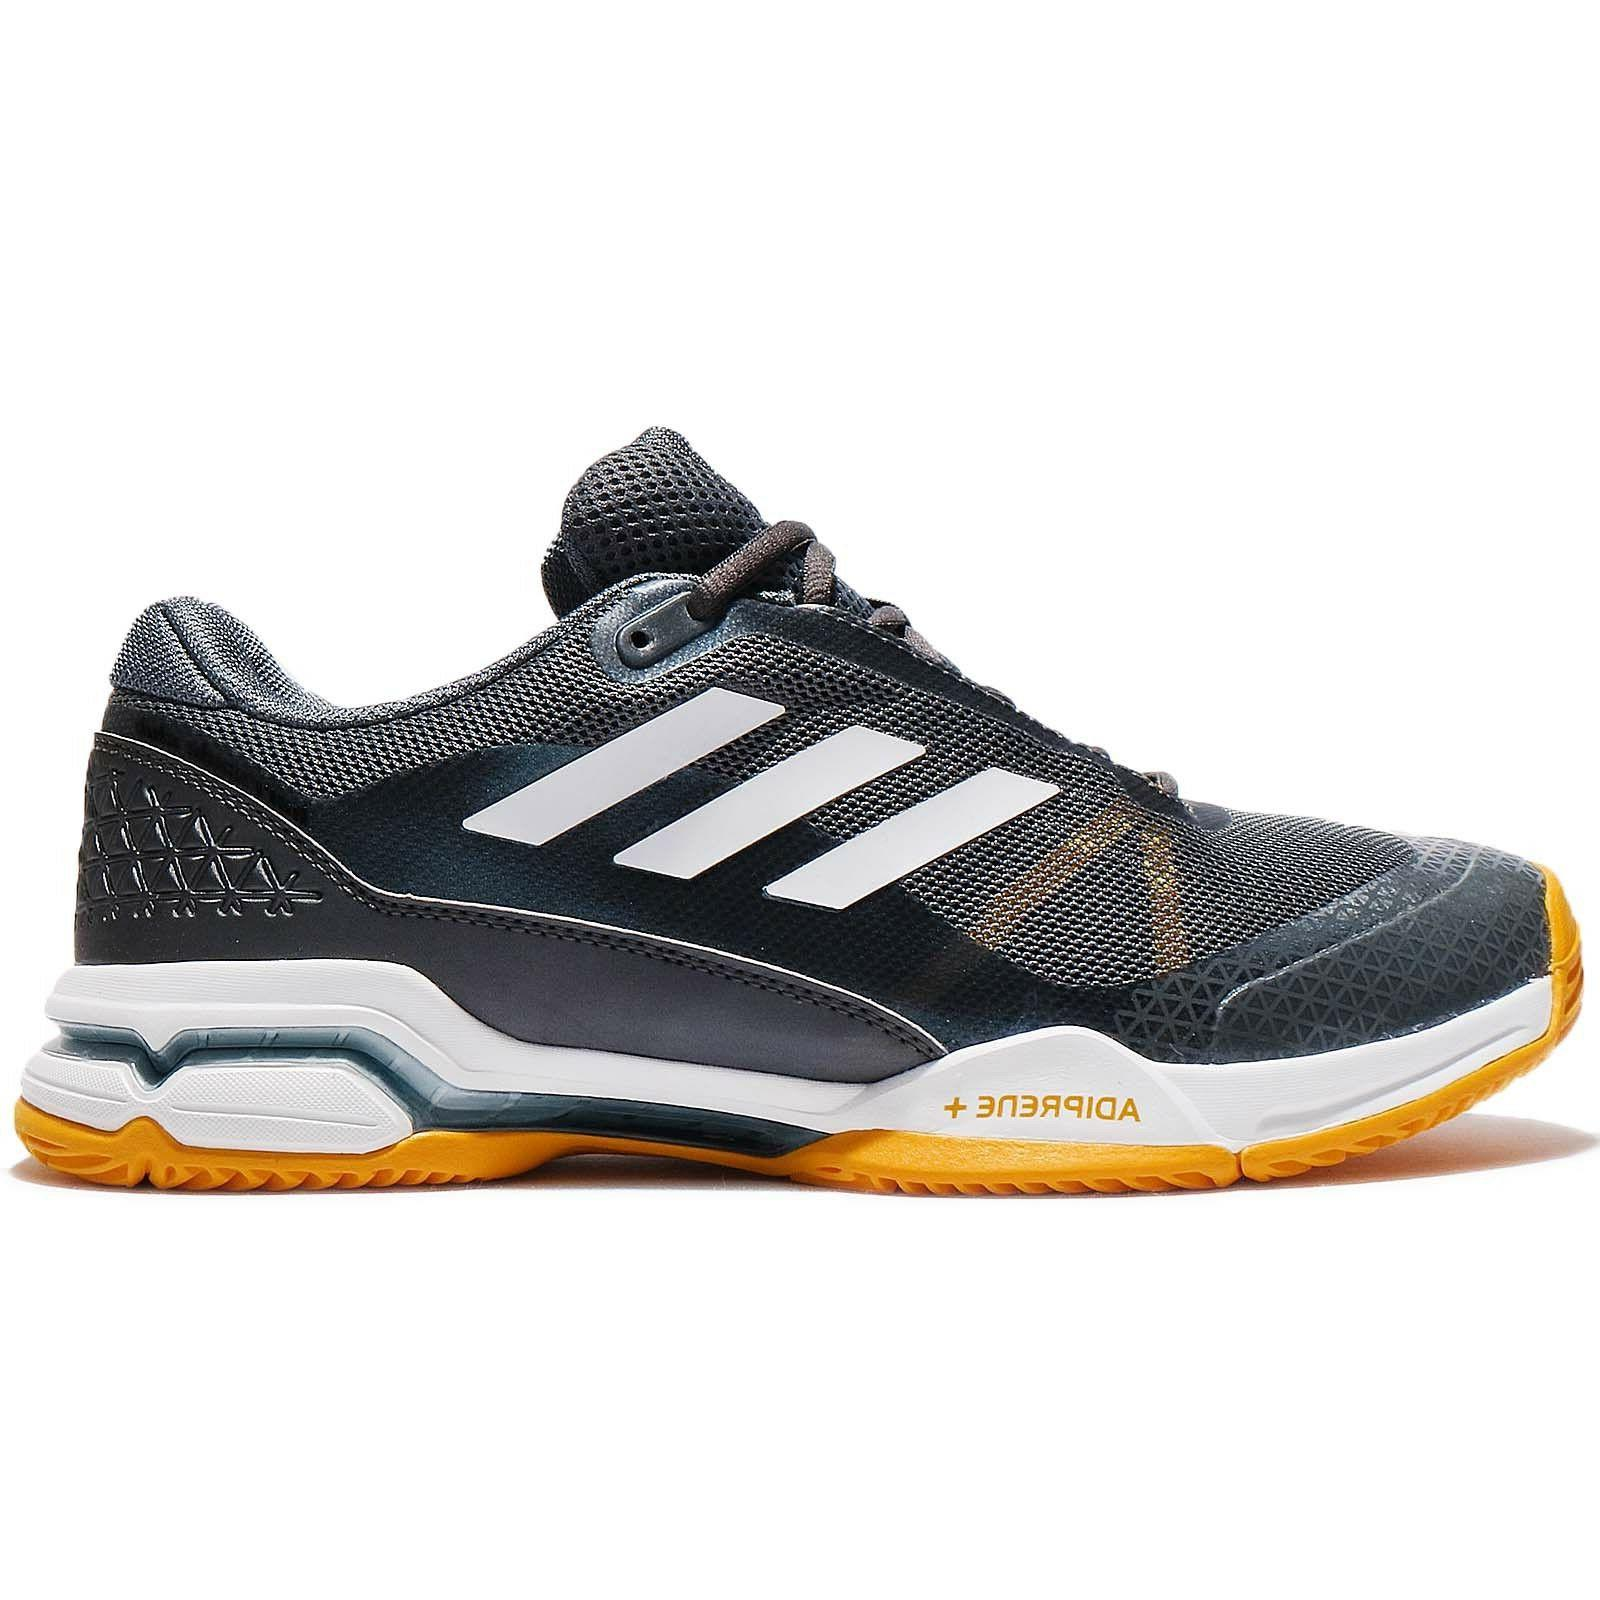 NEW Adidas Silver White Tennis Shoes BY1638